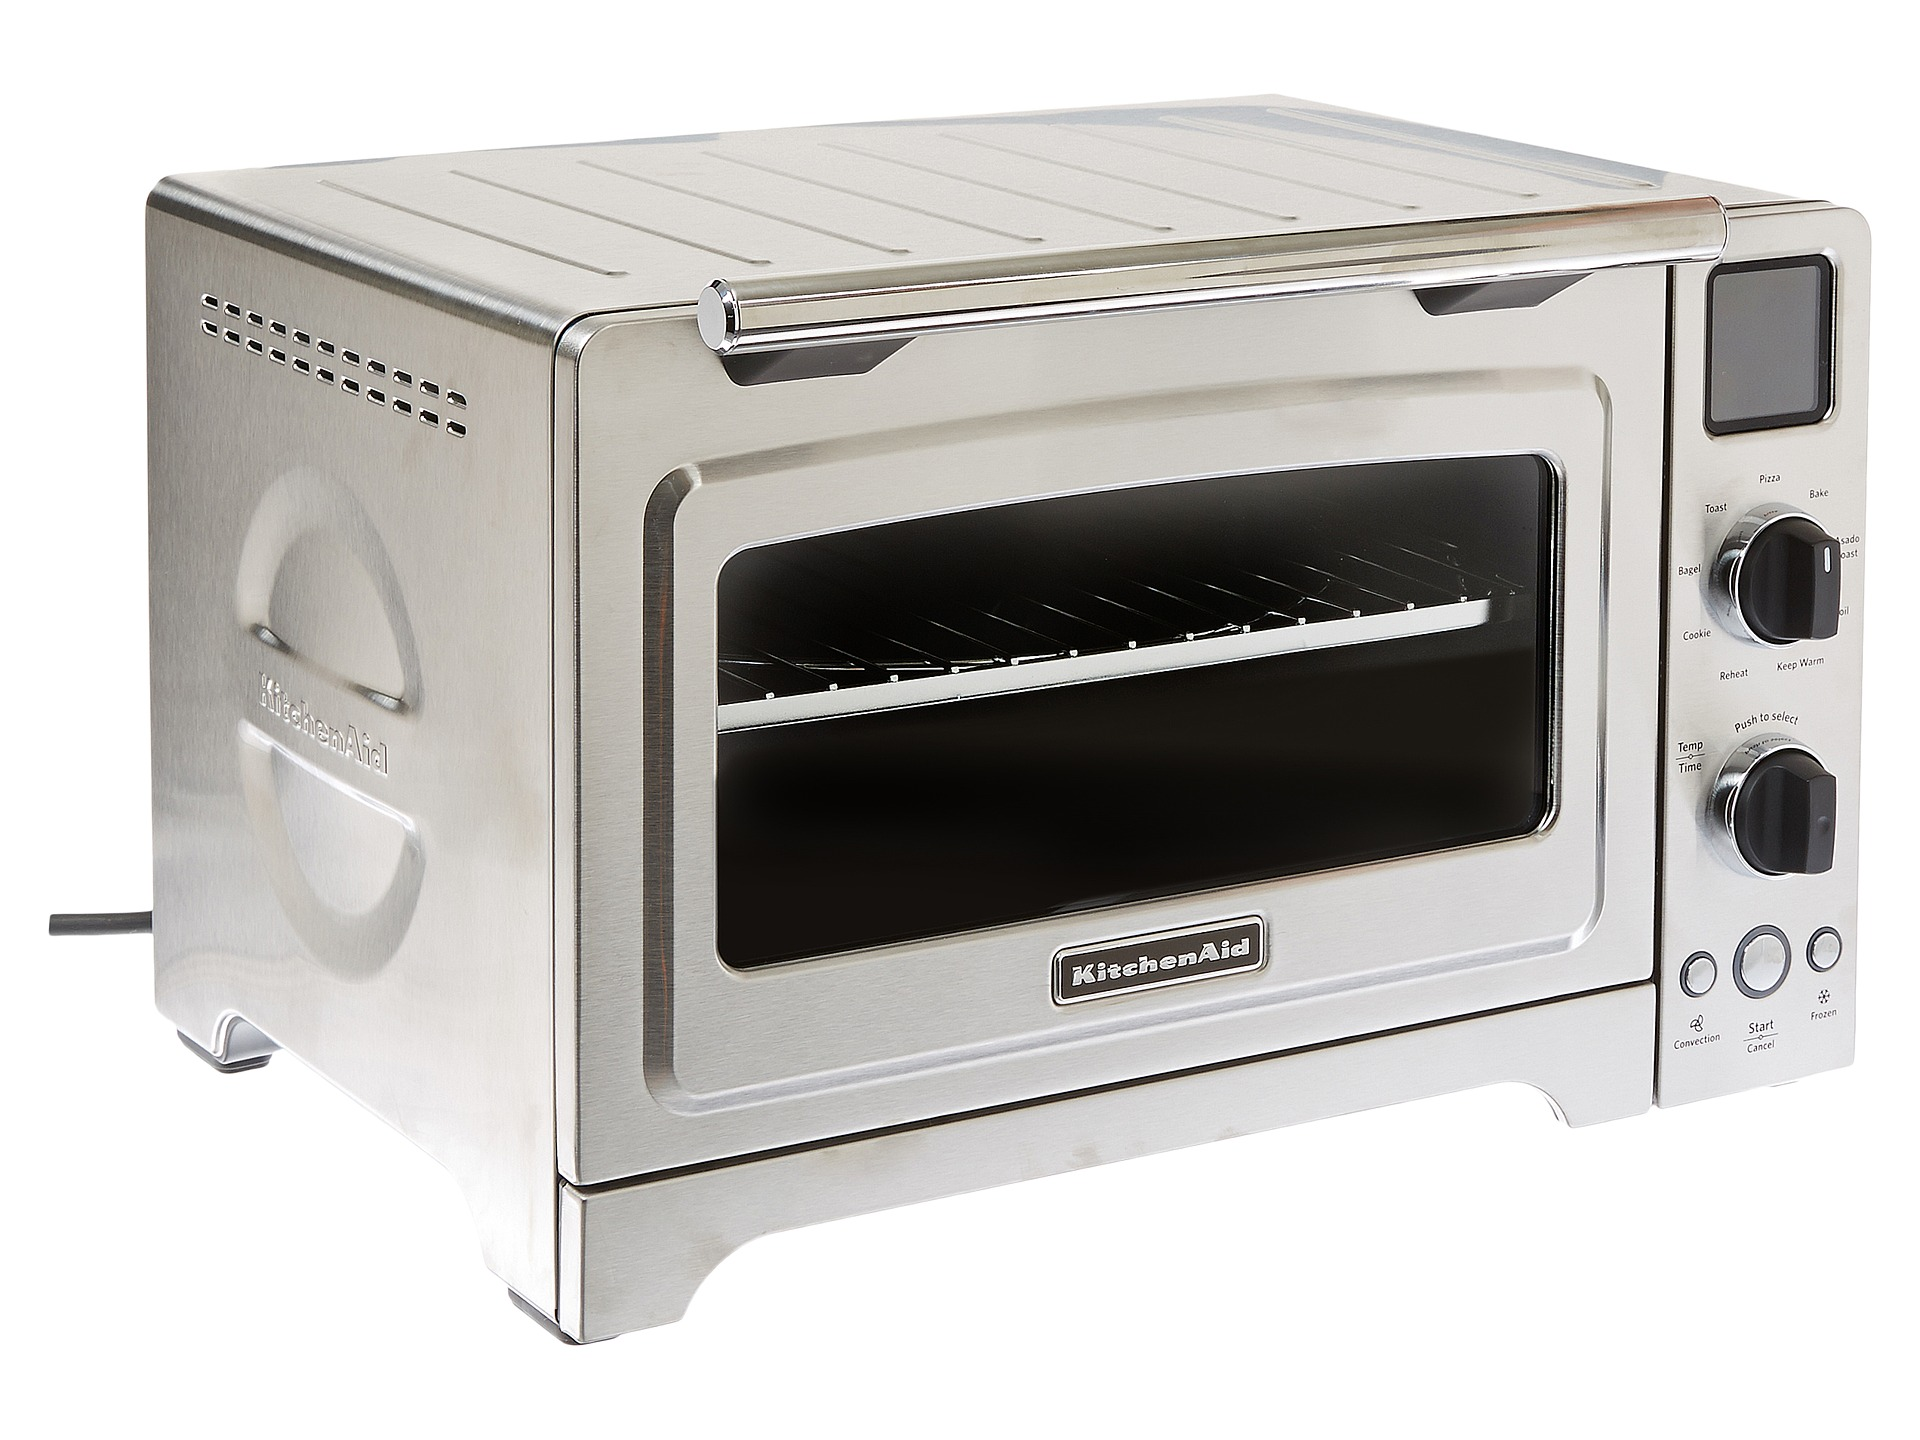 Kitchenaid Countertop Convection Oven Dimensions : No results for kitchenaid kco273ss 12 convection countertop oven ...